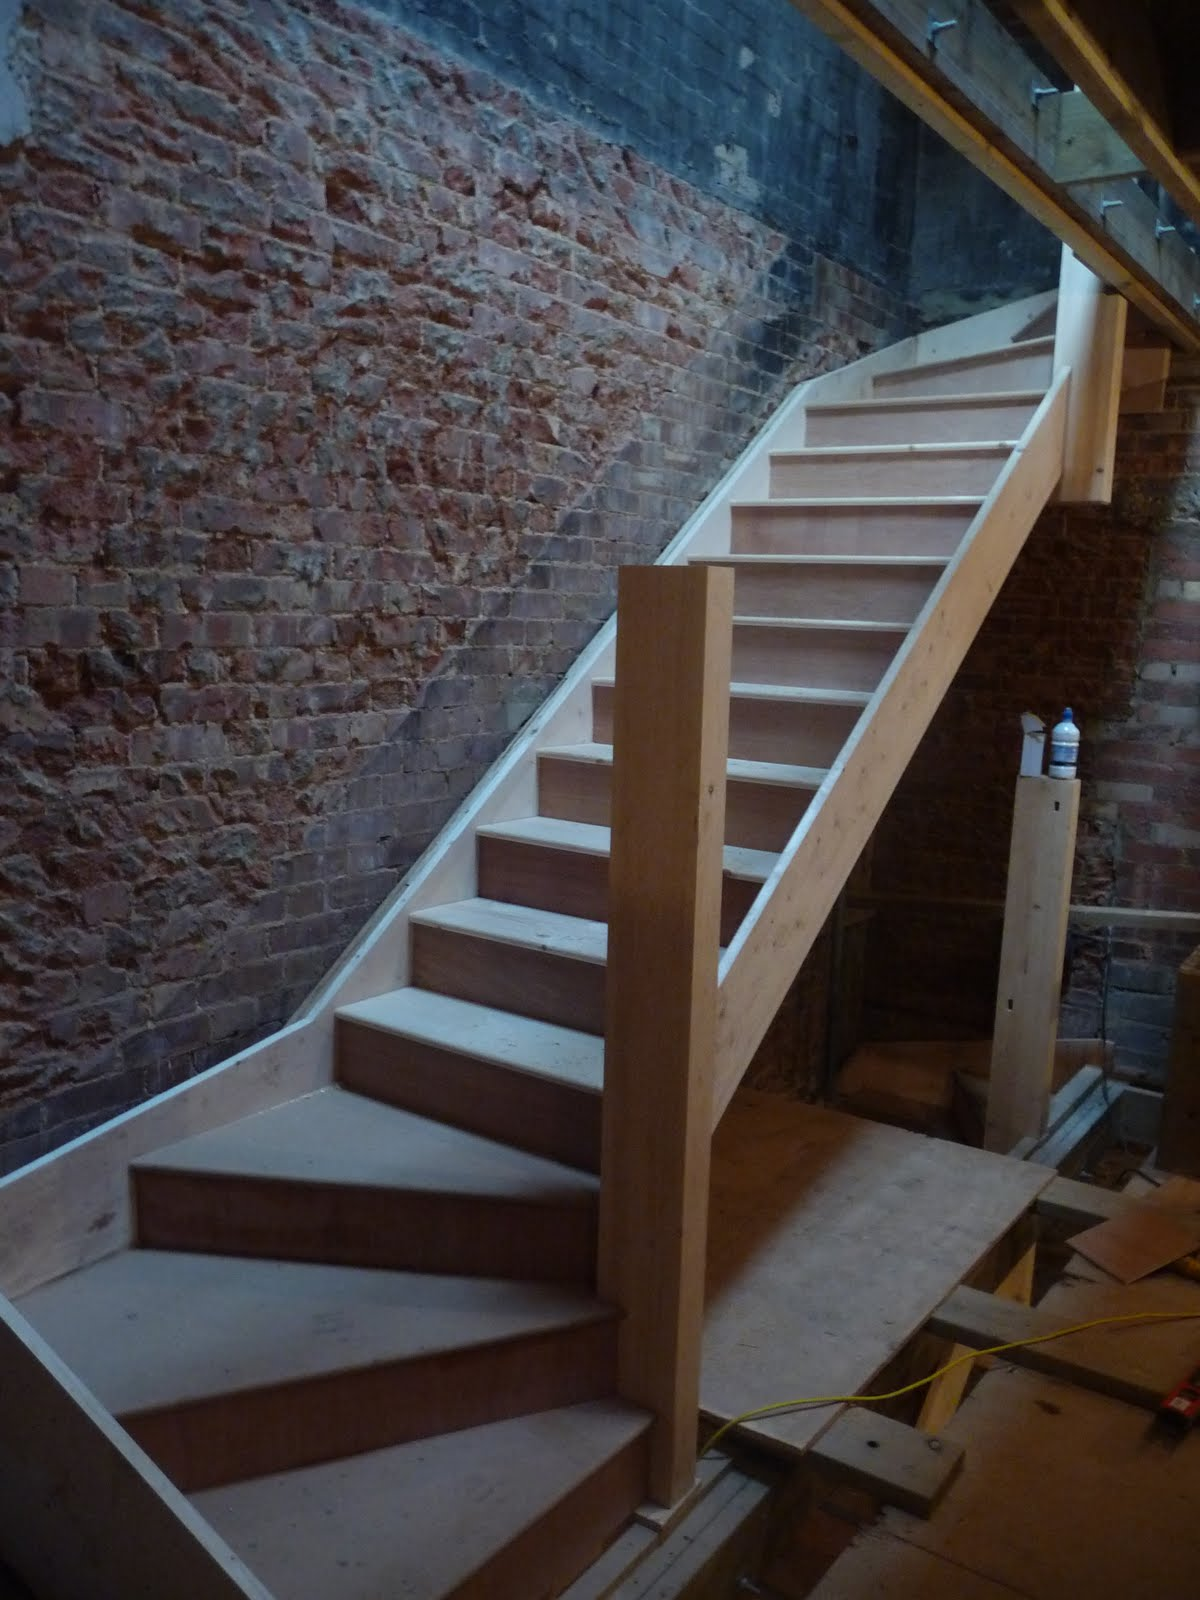 WoodenBother: Stair work